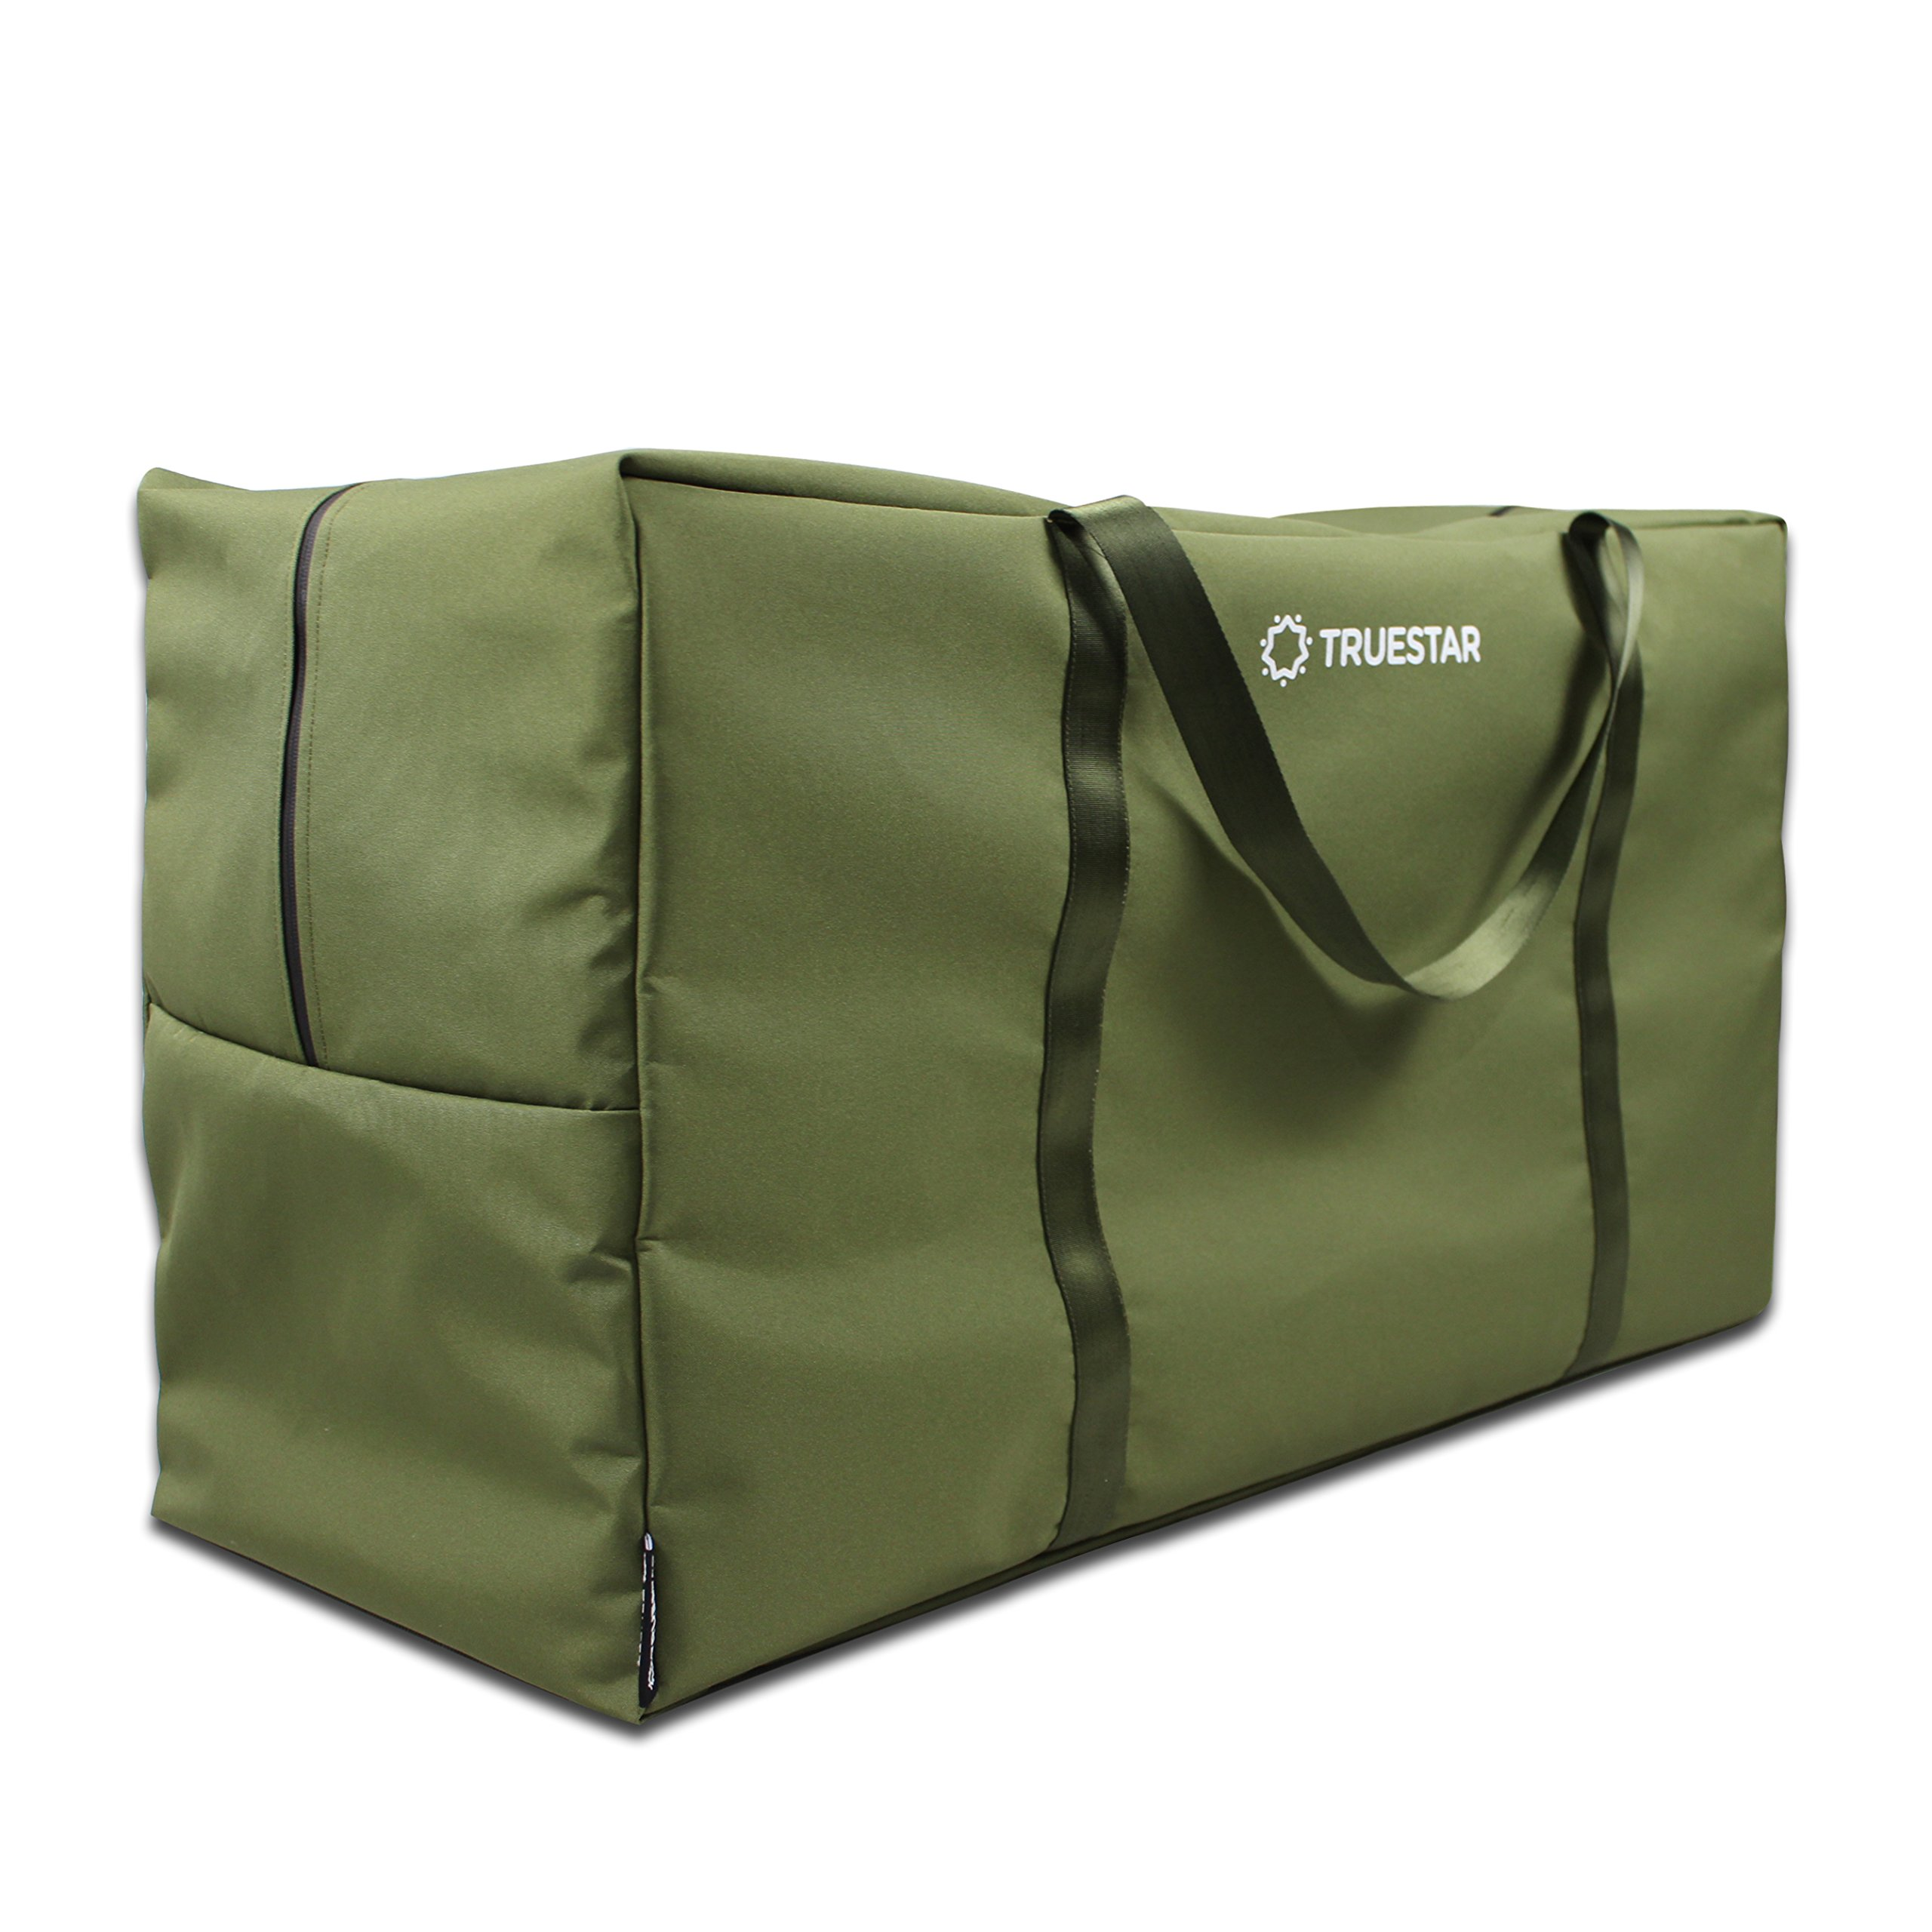 TRUESTAR Patio Cushion Cover Storage Bag Outdoor Water Resistant dust-Proof Non-Woven TPU Patio Rectangular Storage Bag Protective Zippered Patio Furniture Cover with Durable, Green